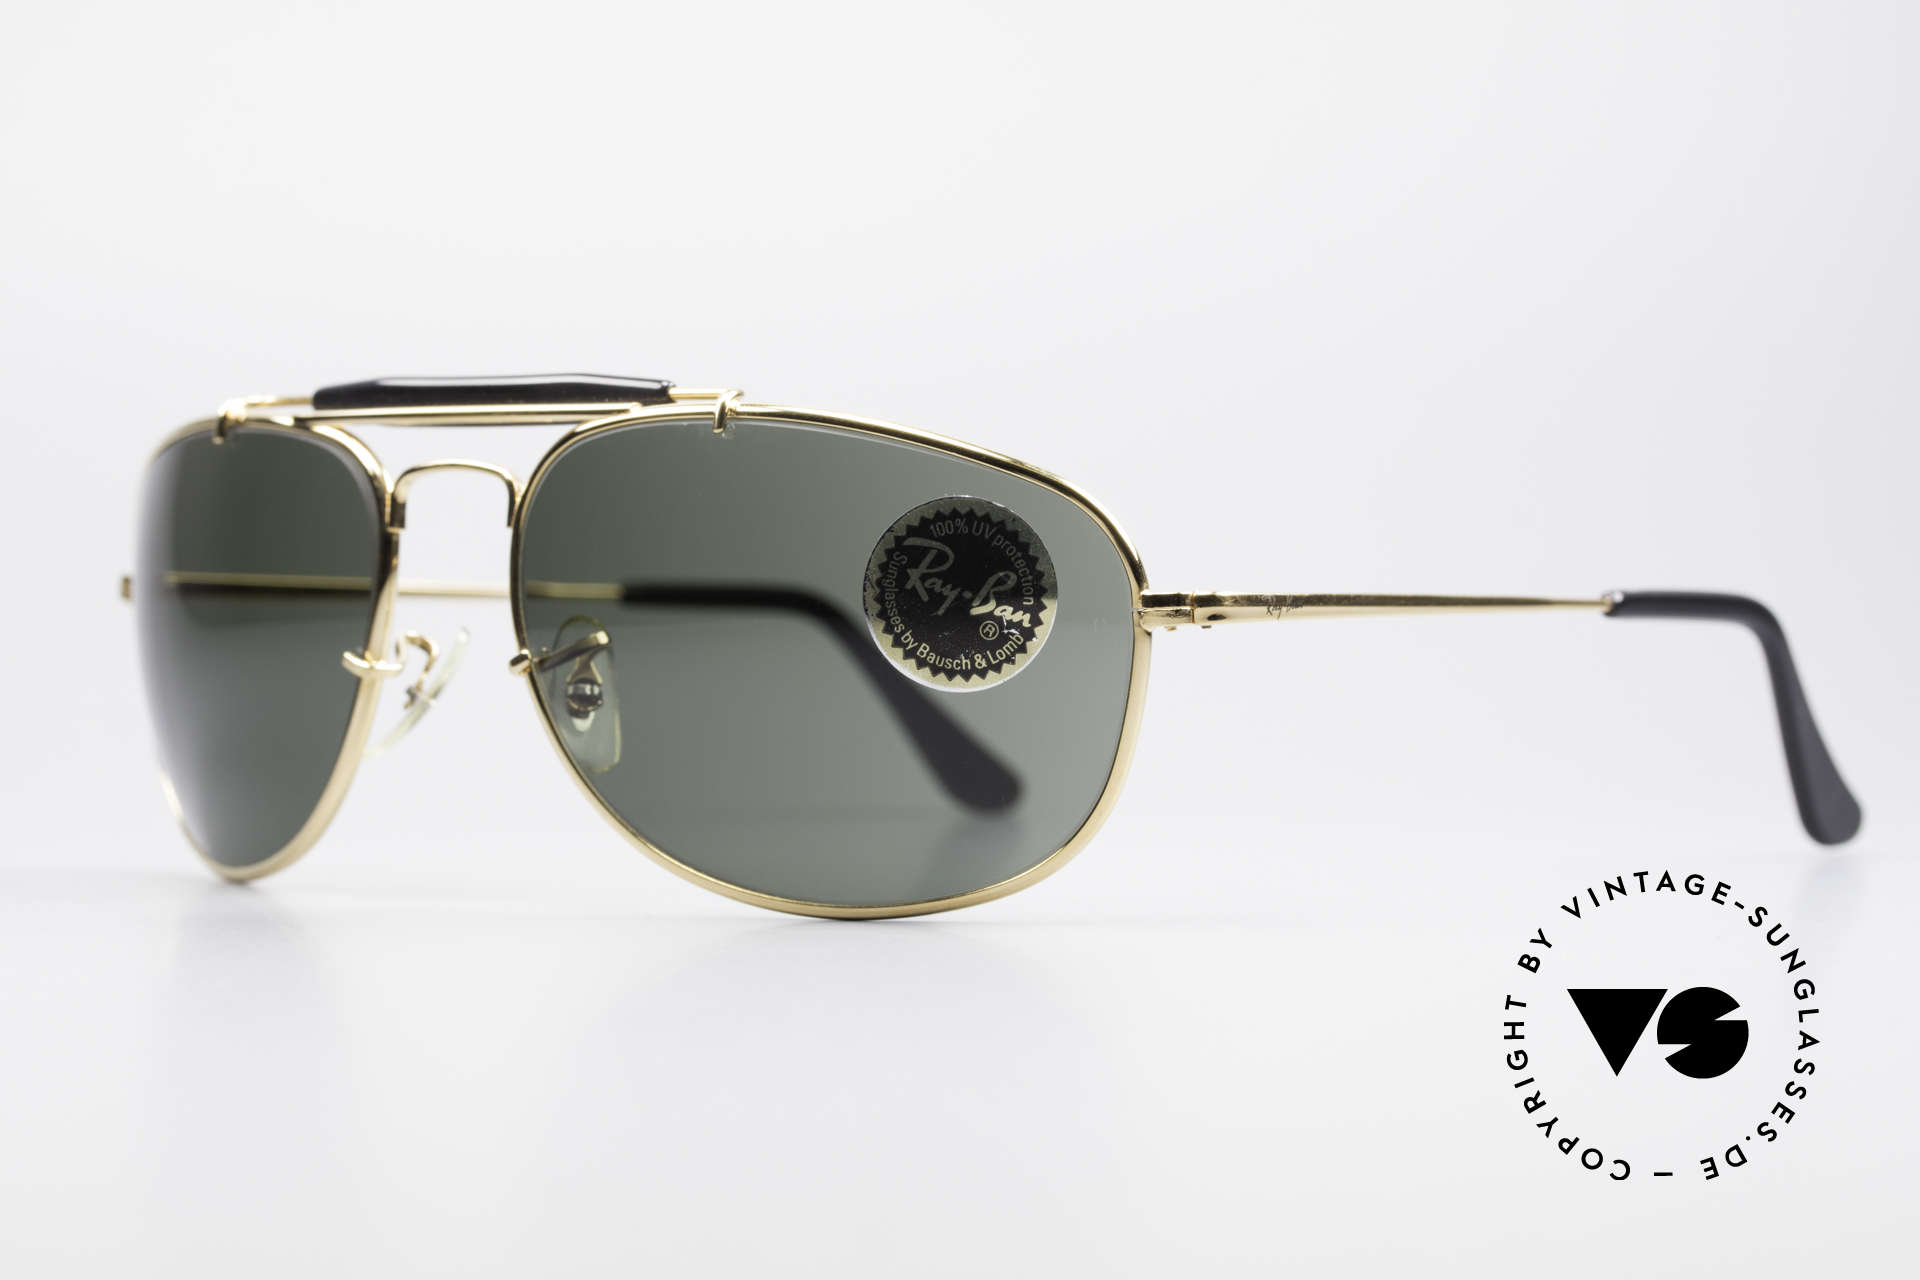 Ray Ban Sport Metal 1992 Rare Olympic Series B&L USA, top-notch craftsmanship by B&L (very pleasant to wear), Made for Men